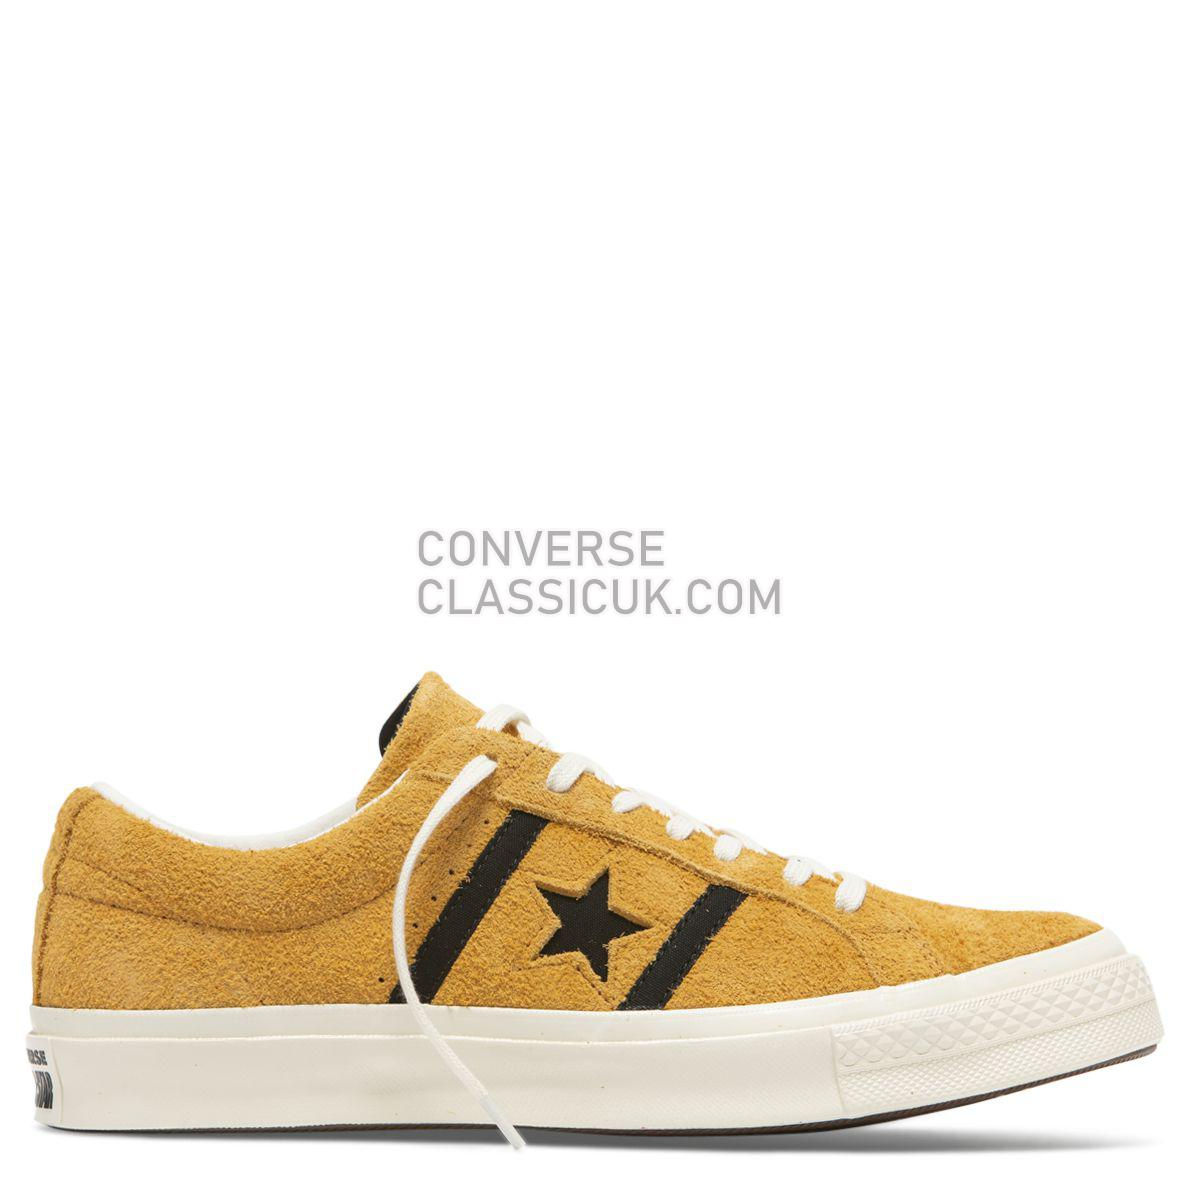 Converse One Star Academy Low Top Amber Ochre Mens Womens Unisex 163268 Amber Ochre/Black/Egret Shoes